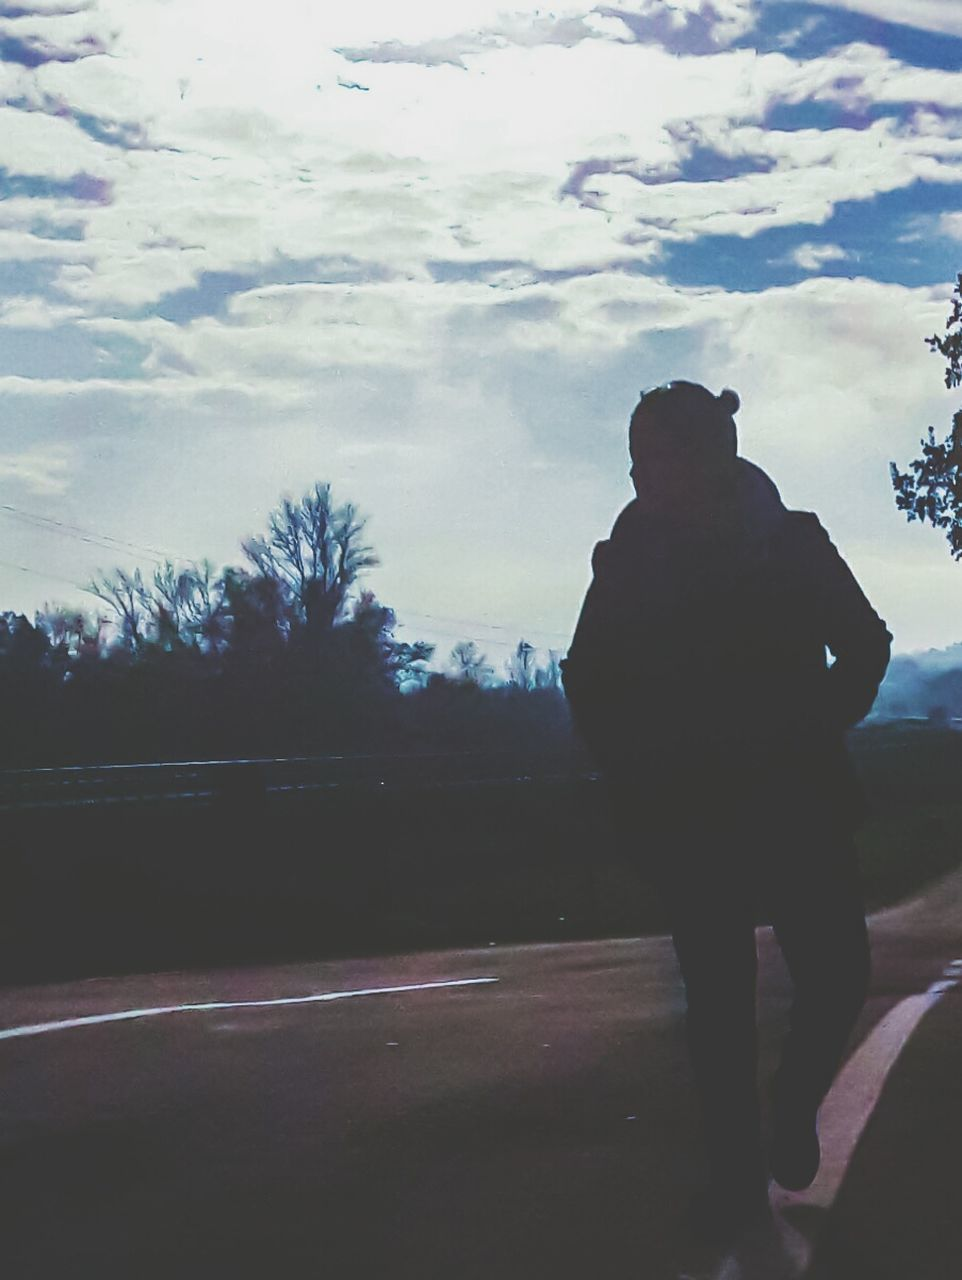 road, one person, sky, silhouette, full length, real people, cloud - sky, outdoors, men, rear view, transportation, day, lifestyles, tree, one man only, nature, adult, people